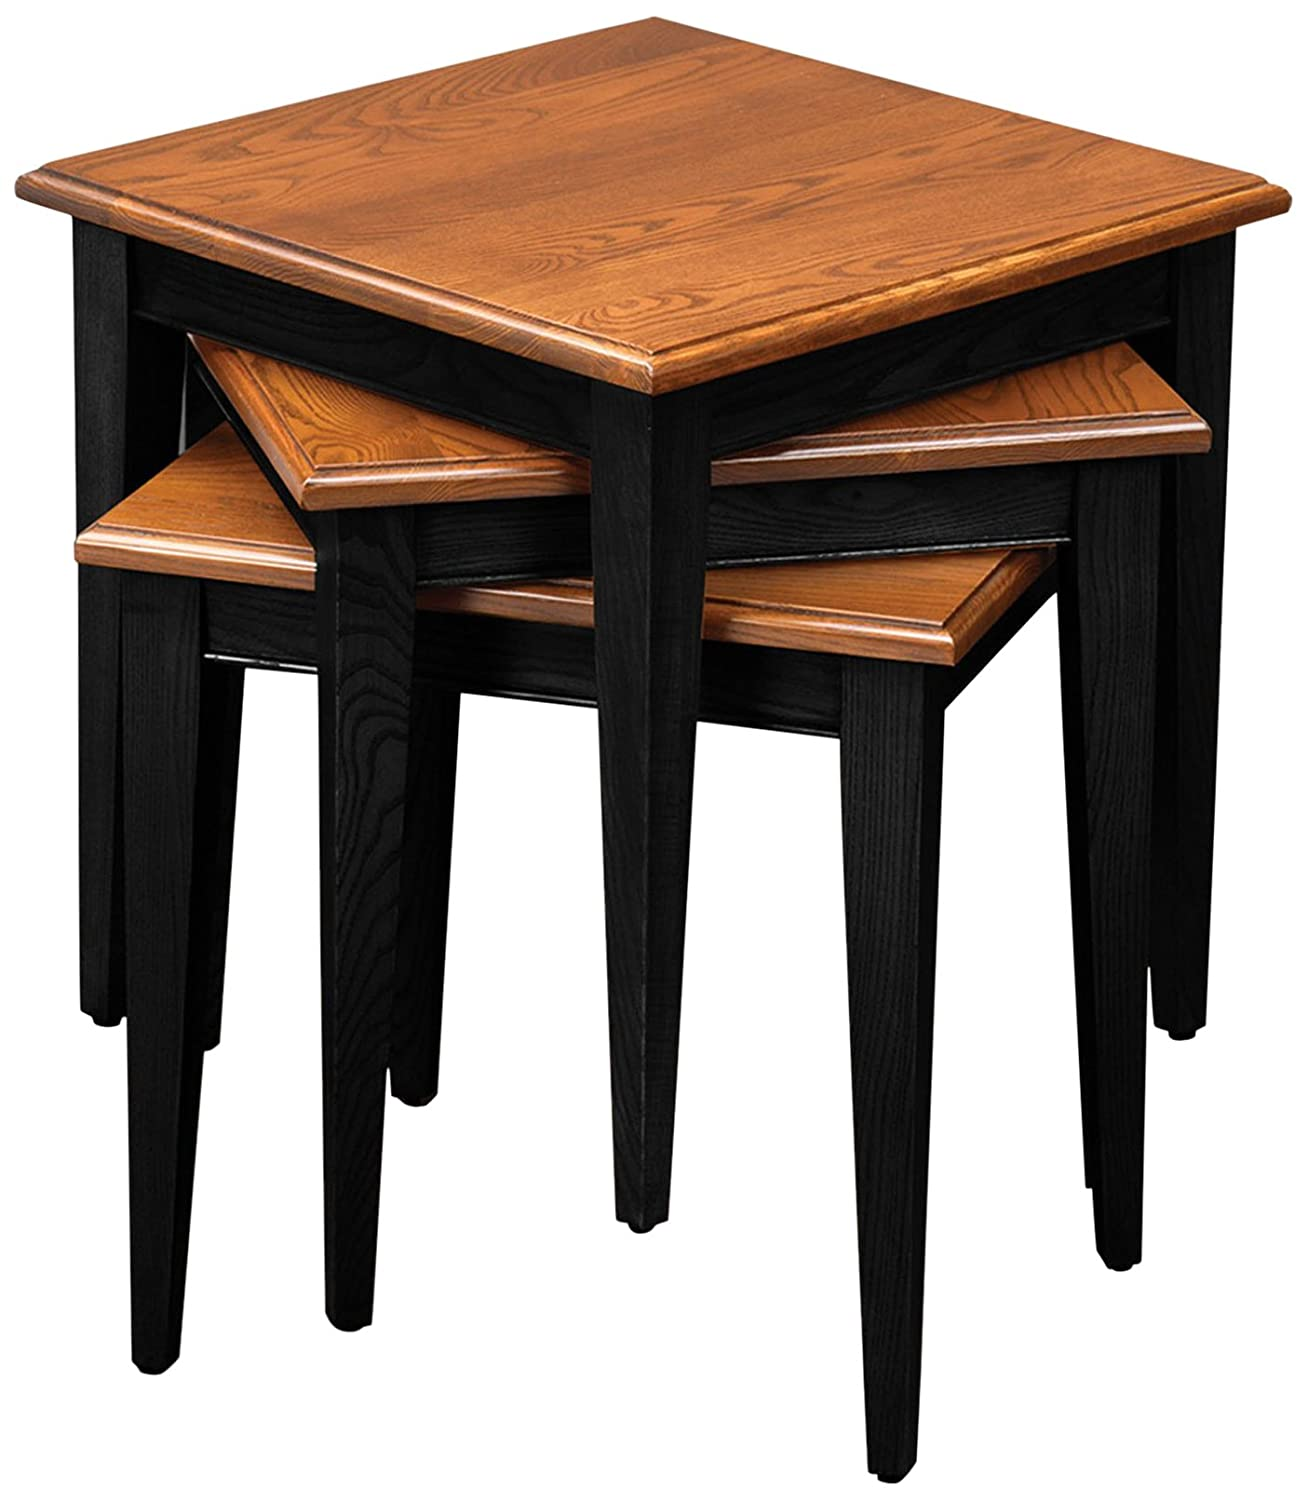 Leick Stacking Table Set, Black and Medium Oak Leick Furniture 9004-SL